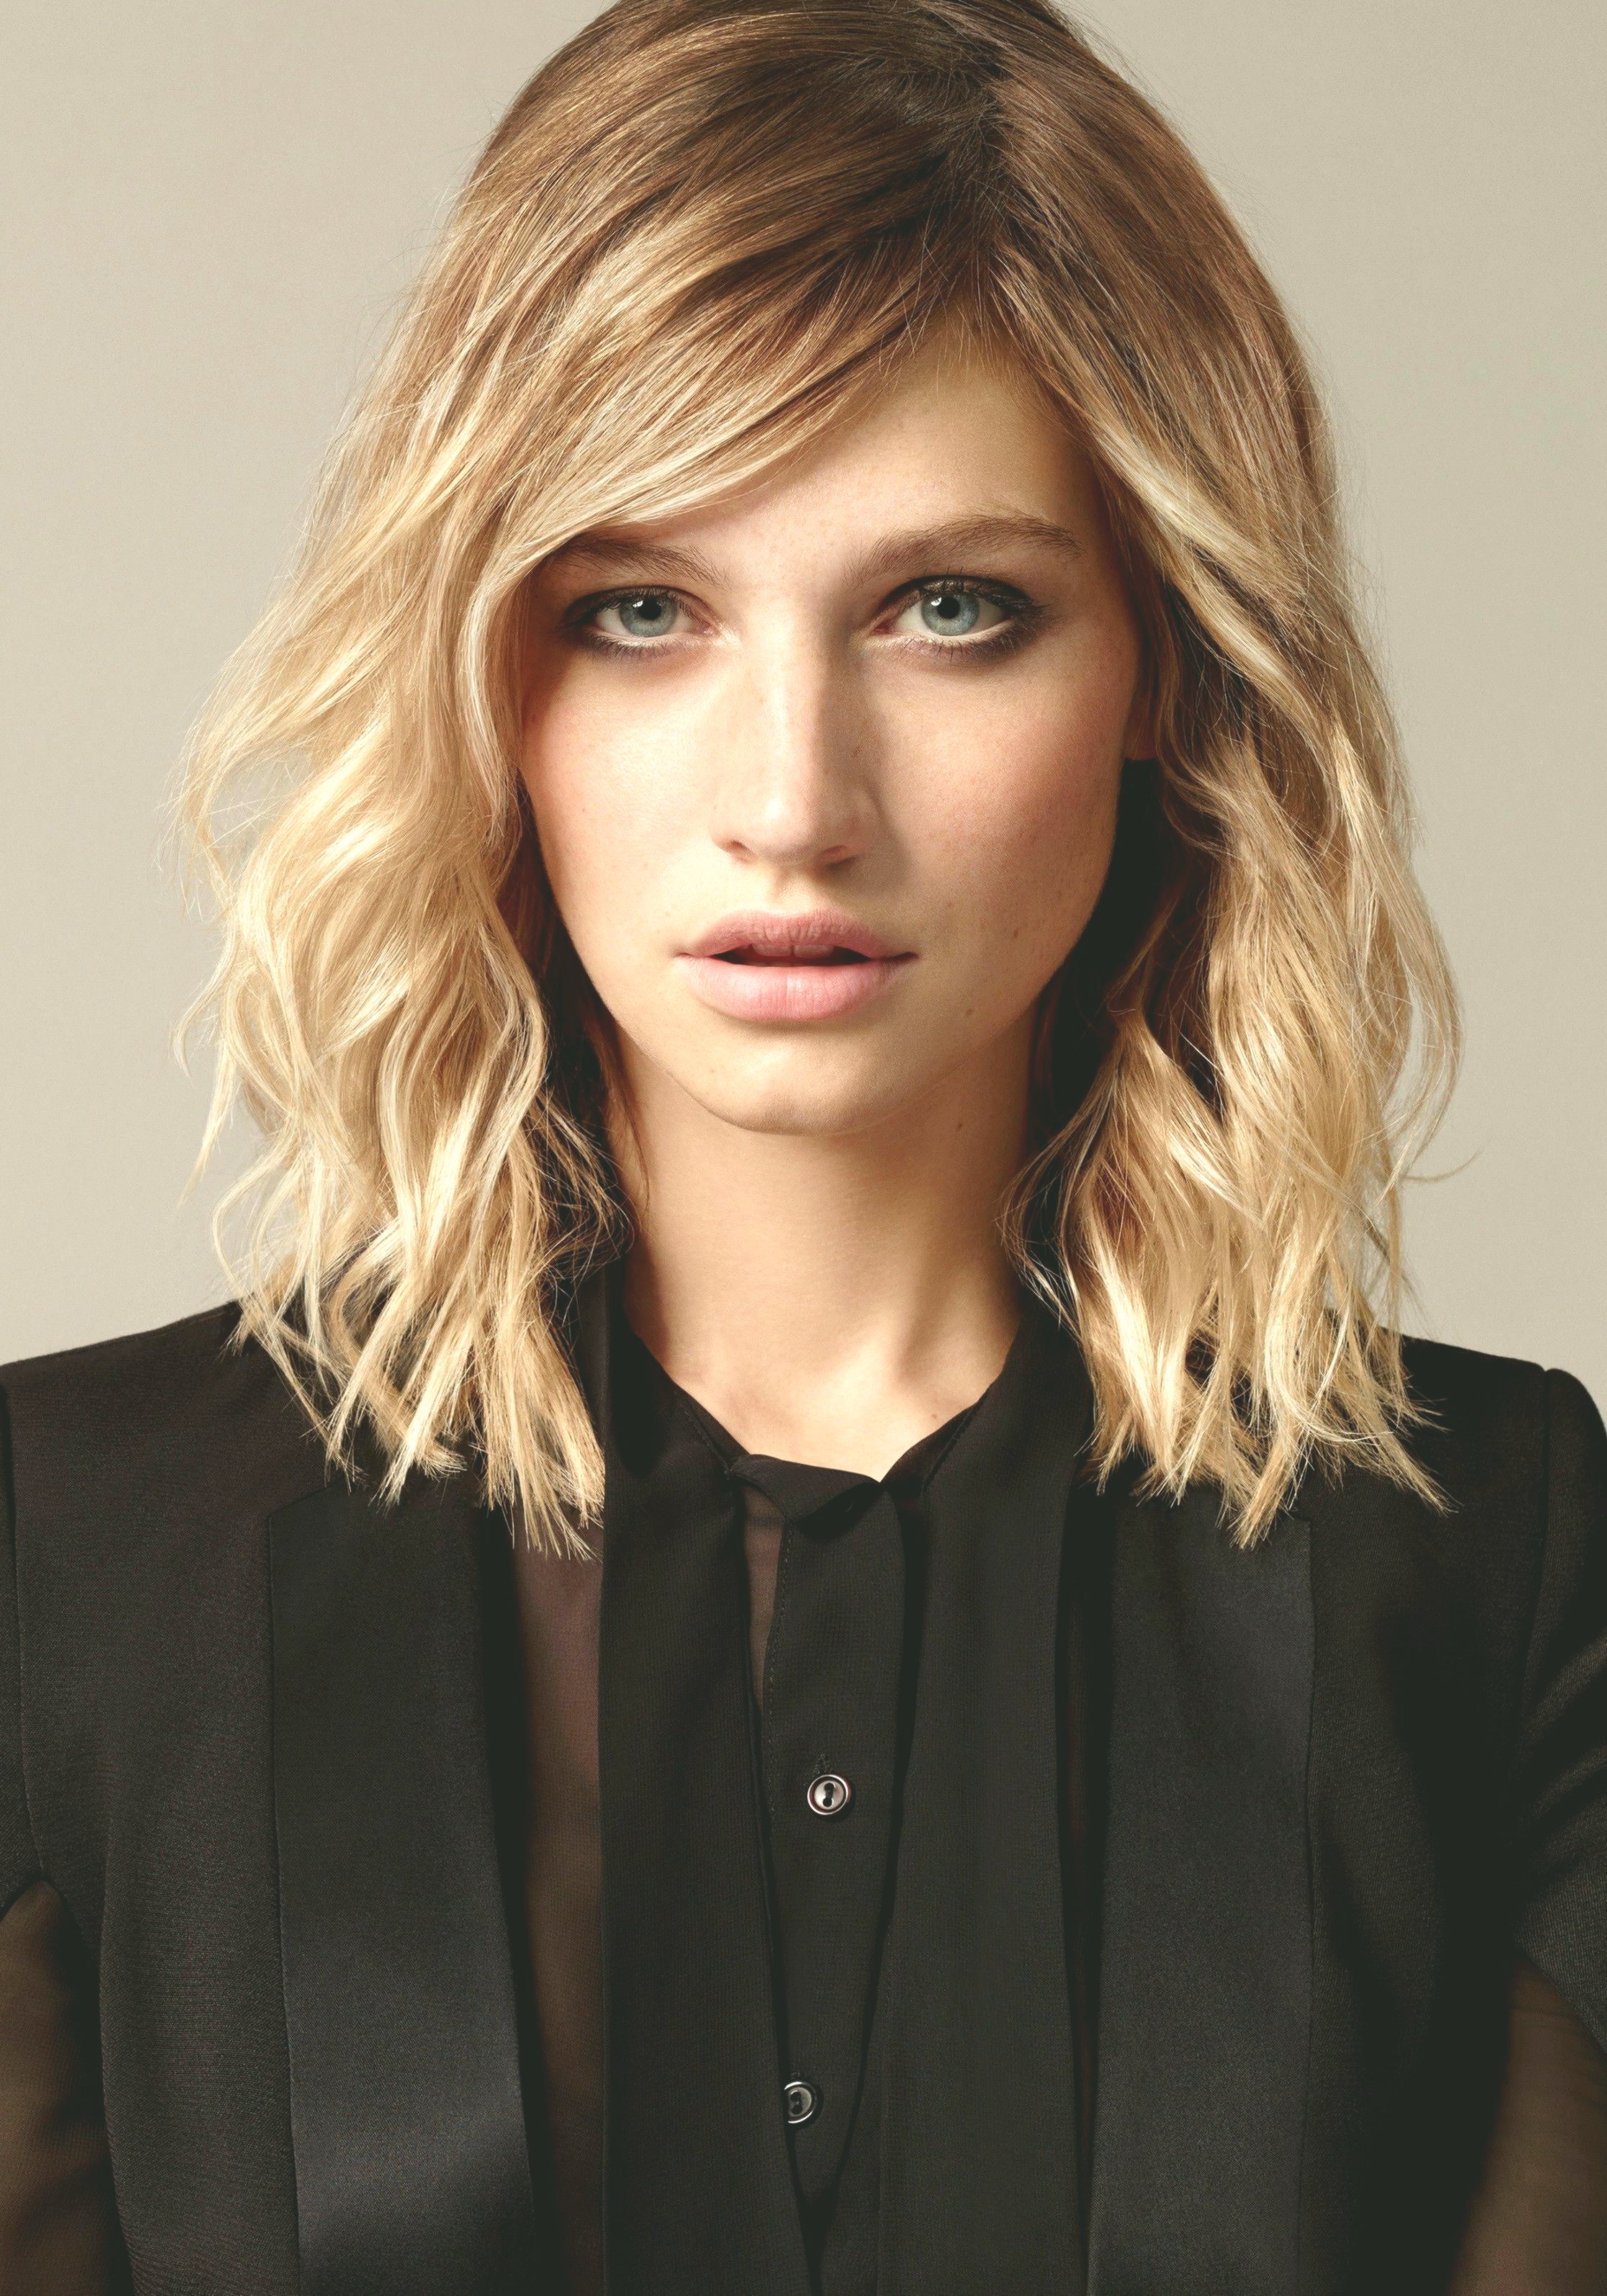 latest short hair 2018 picture-Finest Short Hair 2018 collection